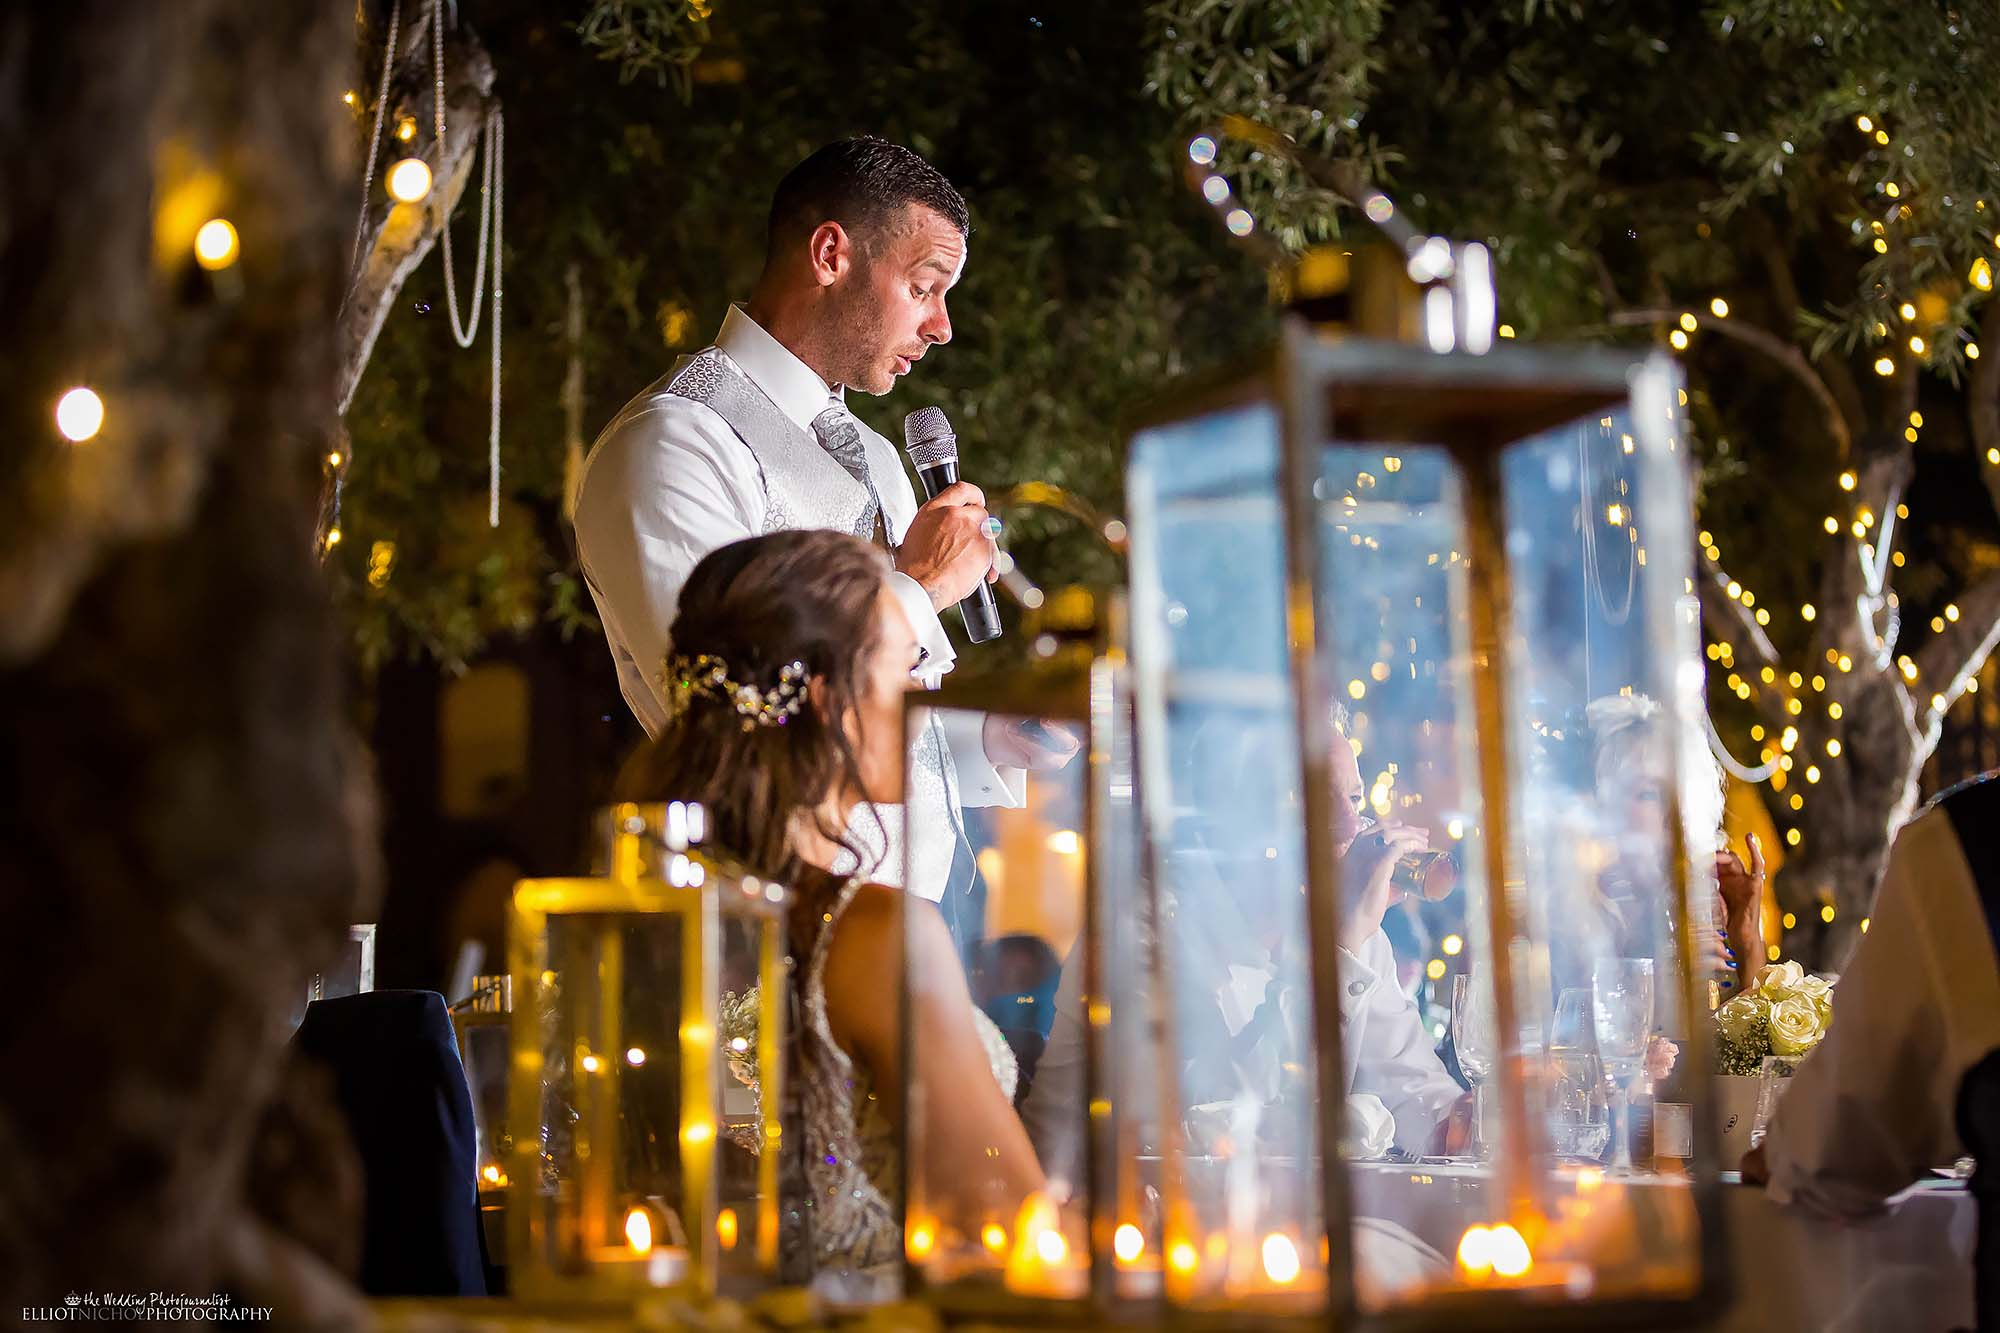 Grooms speech at his wedding reception party.